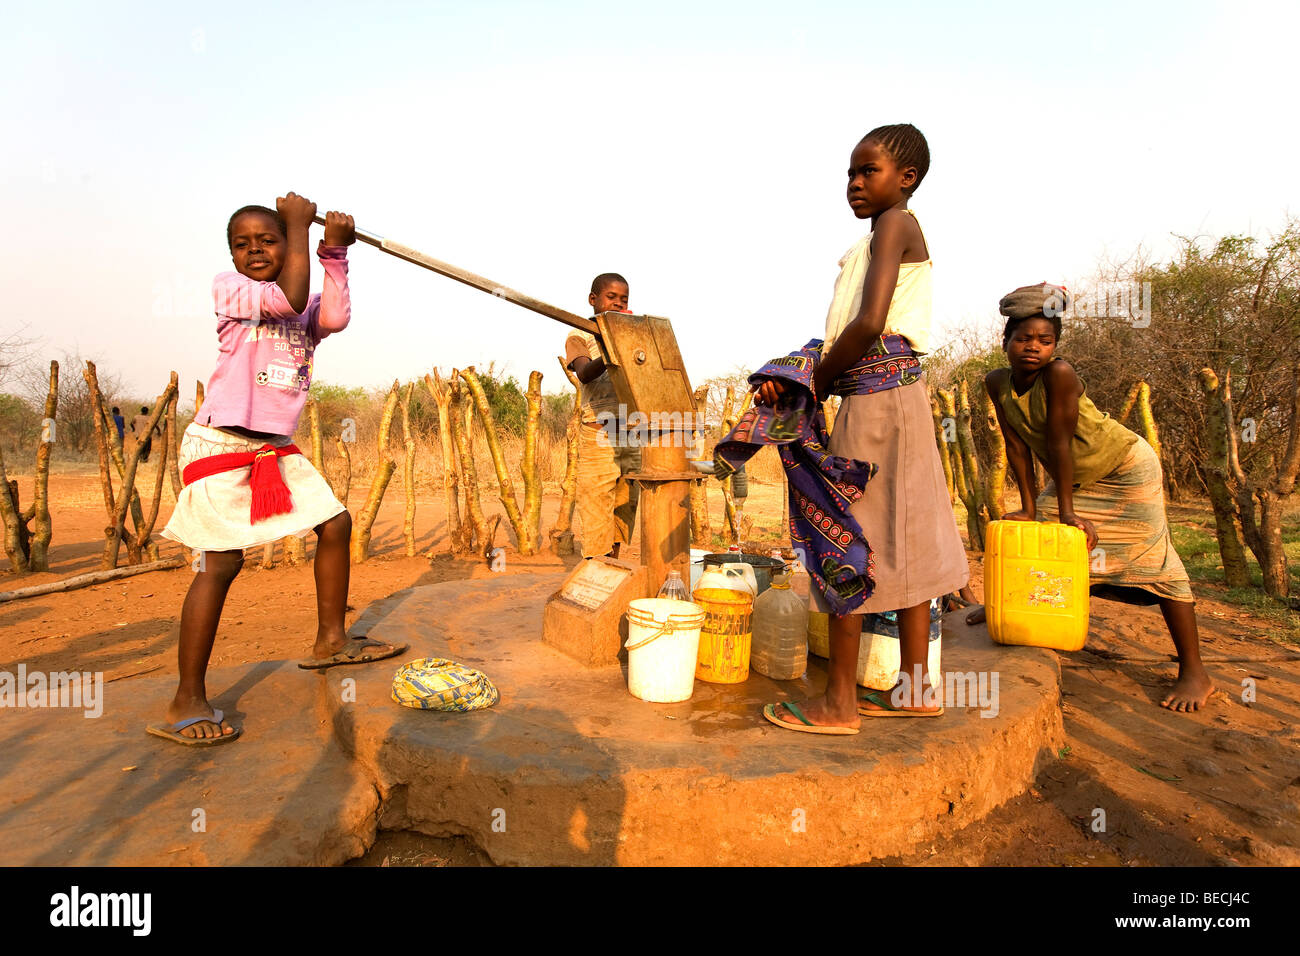 Children pumping water out of a well, African village Sambona, Southern Province, Republic of Zambia, Africa Stock Photo